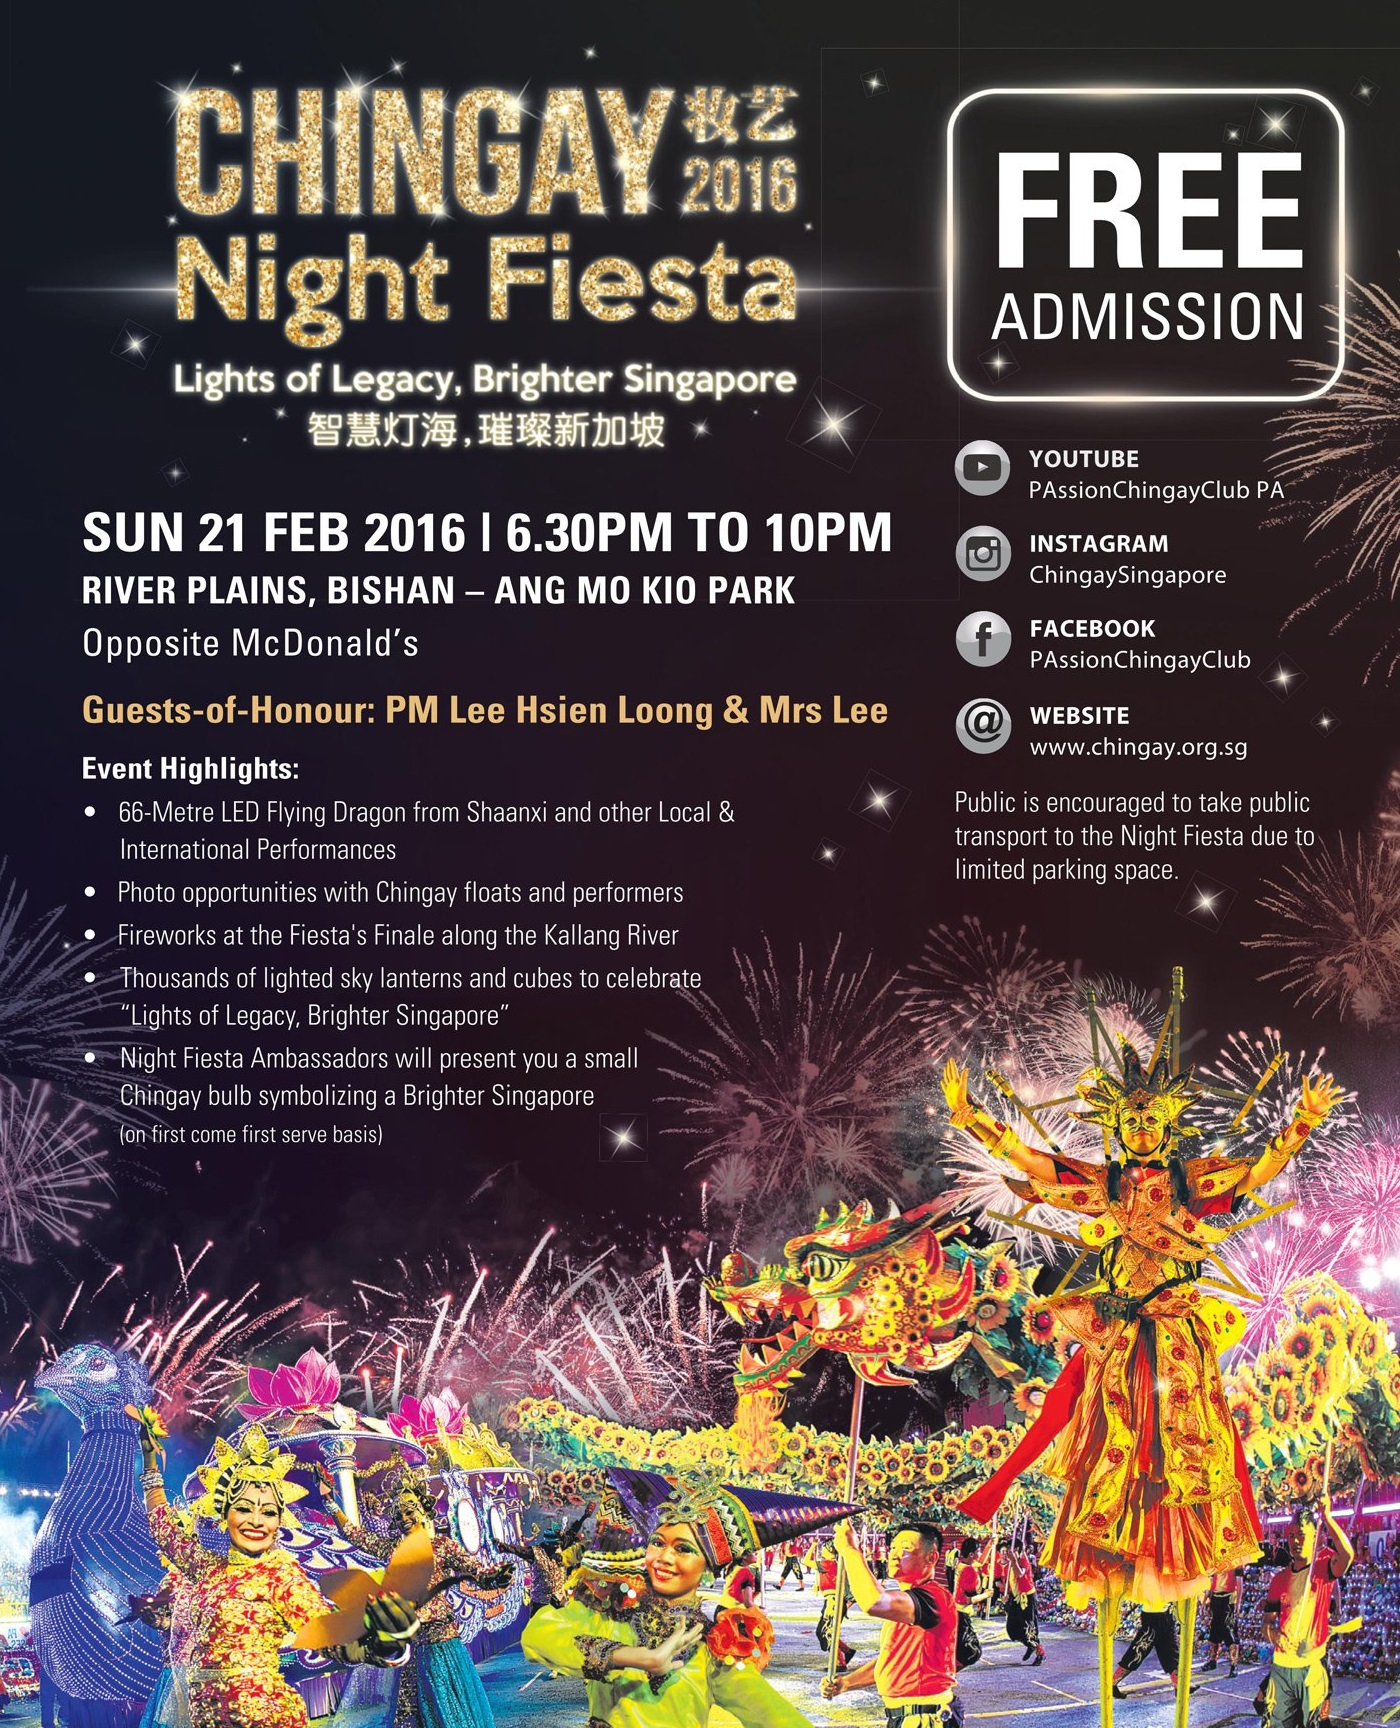 Chingay Night Fiesta in Singapore